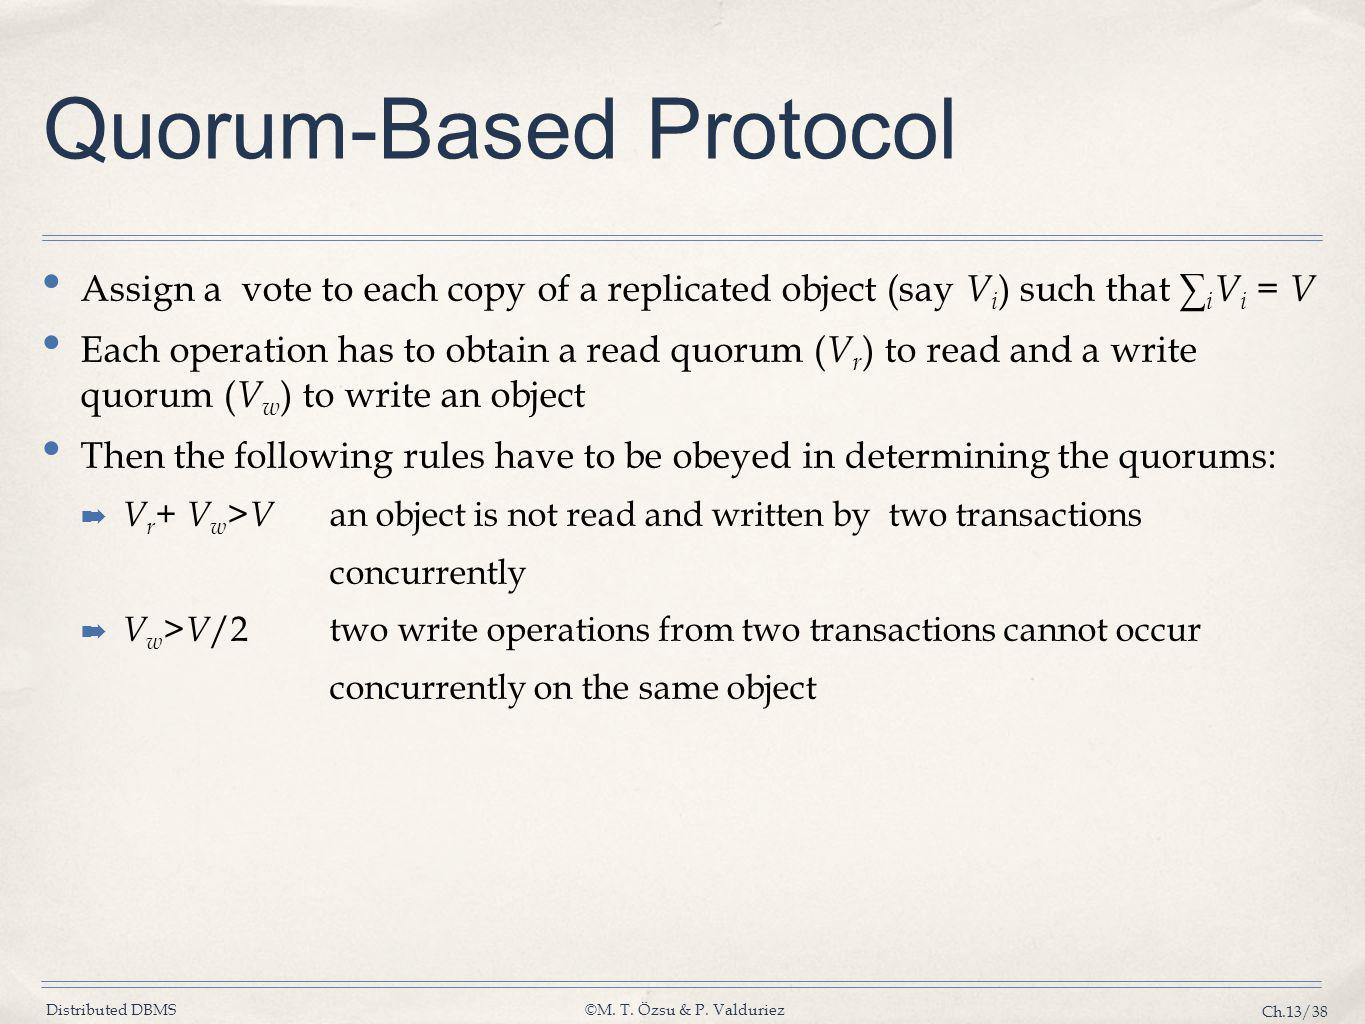 Distributed DBMS©M. T. Özsu & P. Valduriez Ch.13/38 Quorum-Based Protocol Assign a vote to each copy of a replicated object (say V i ) such that ∑ i V